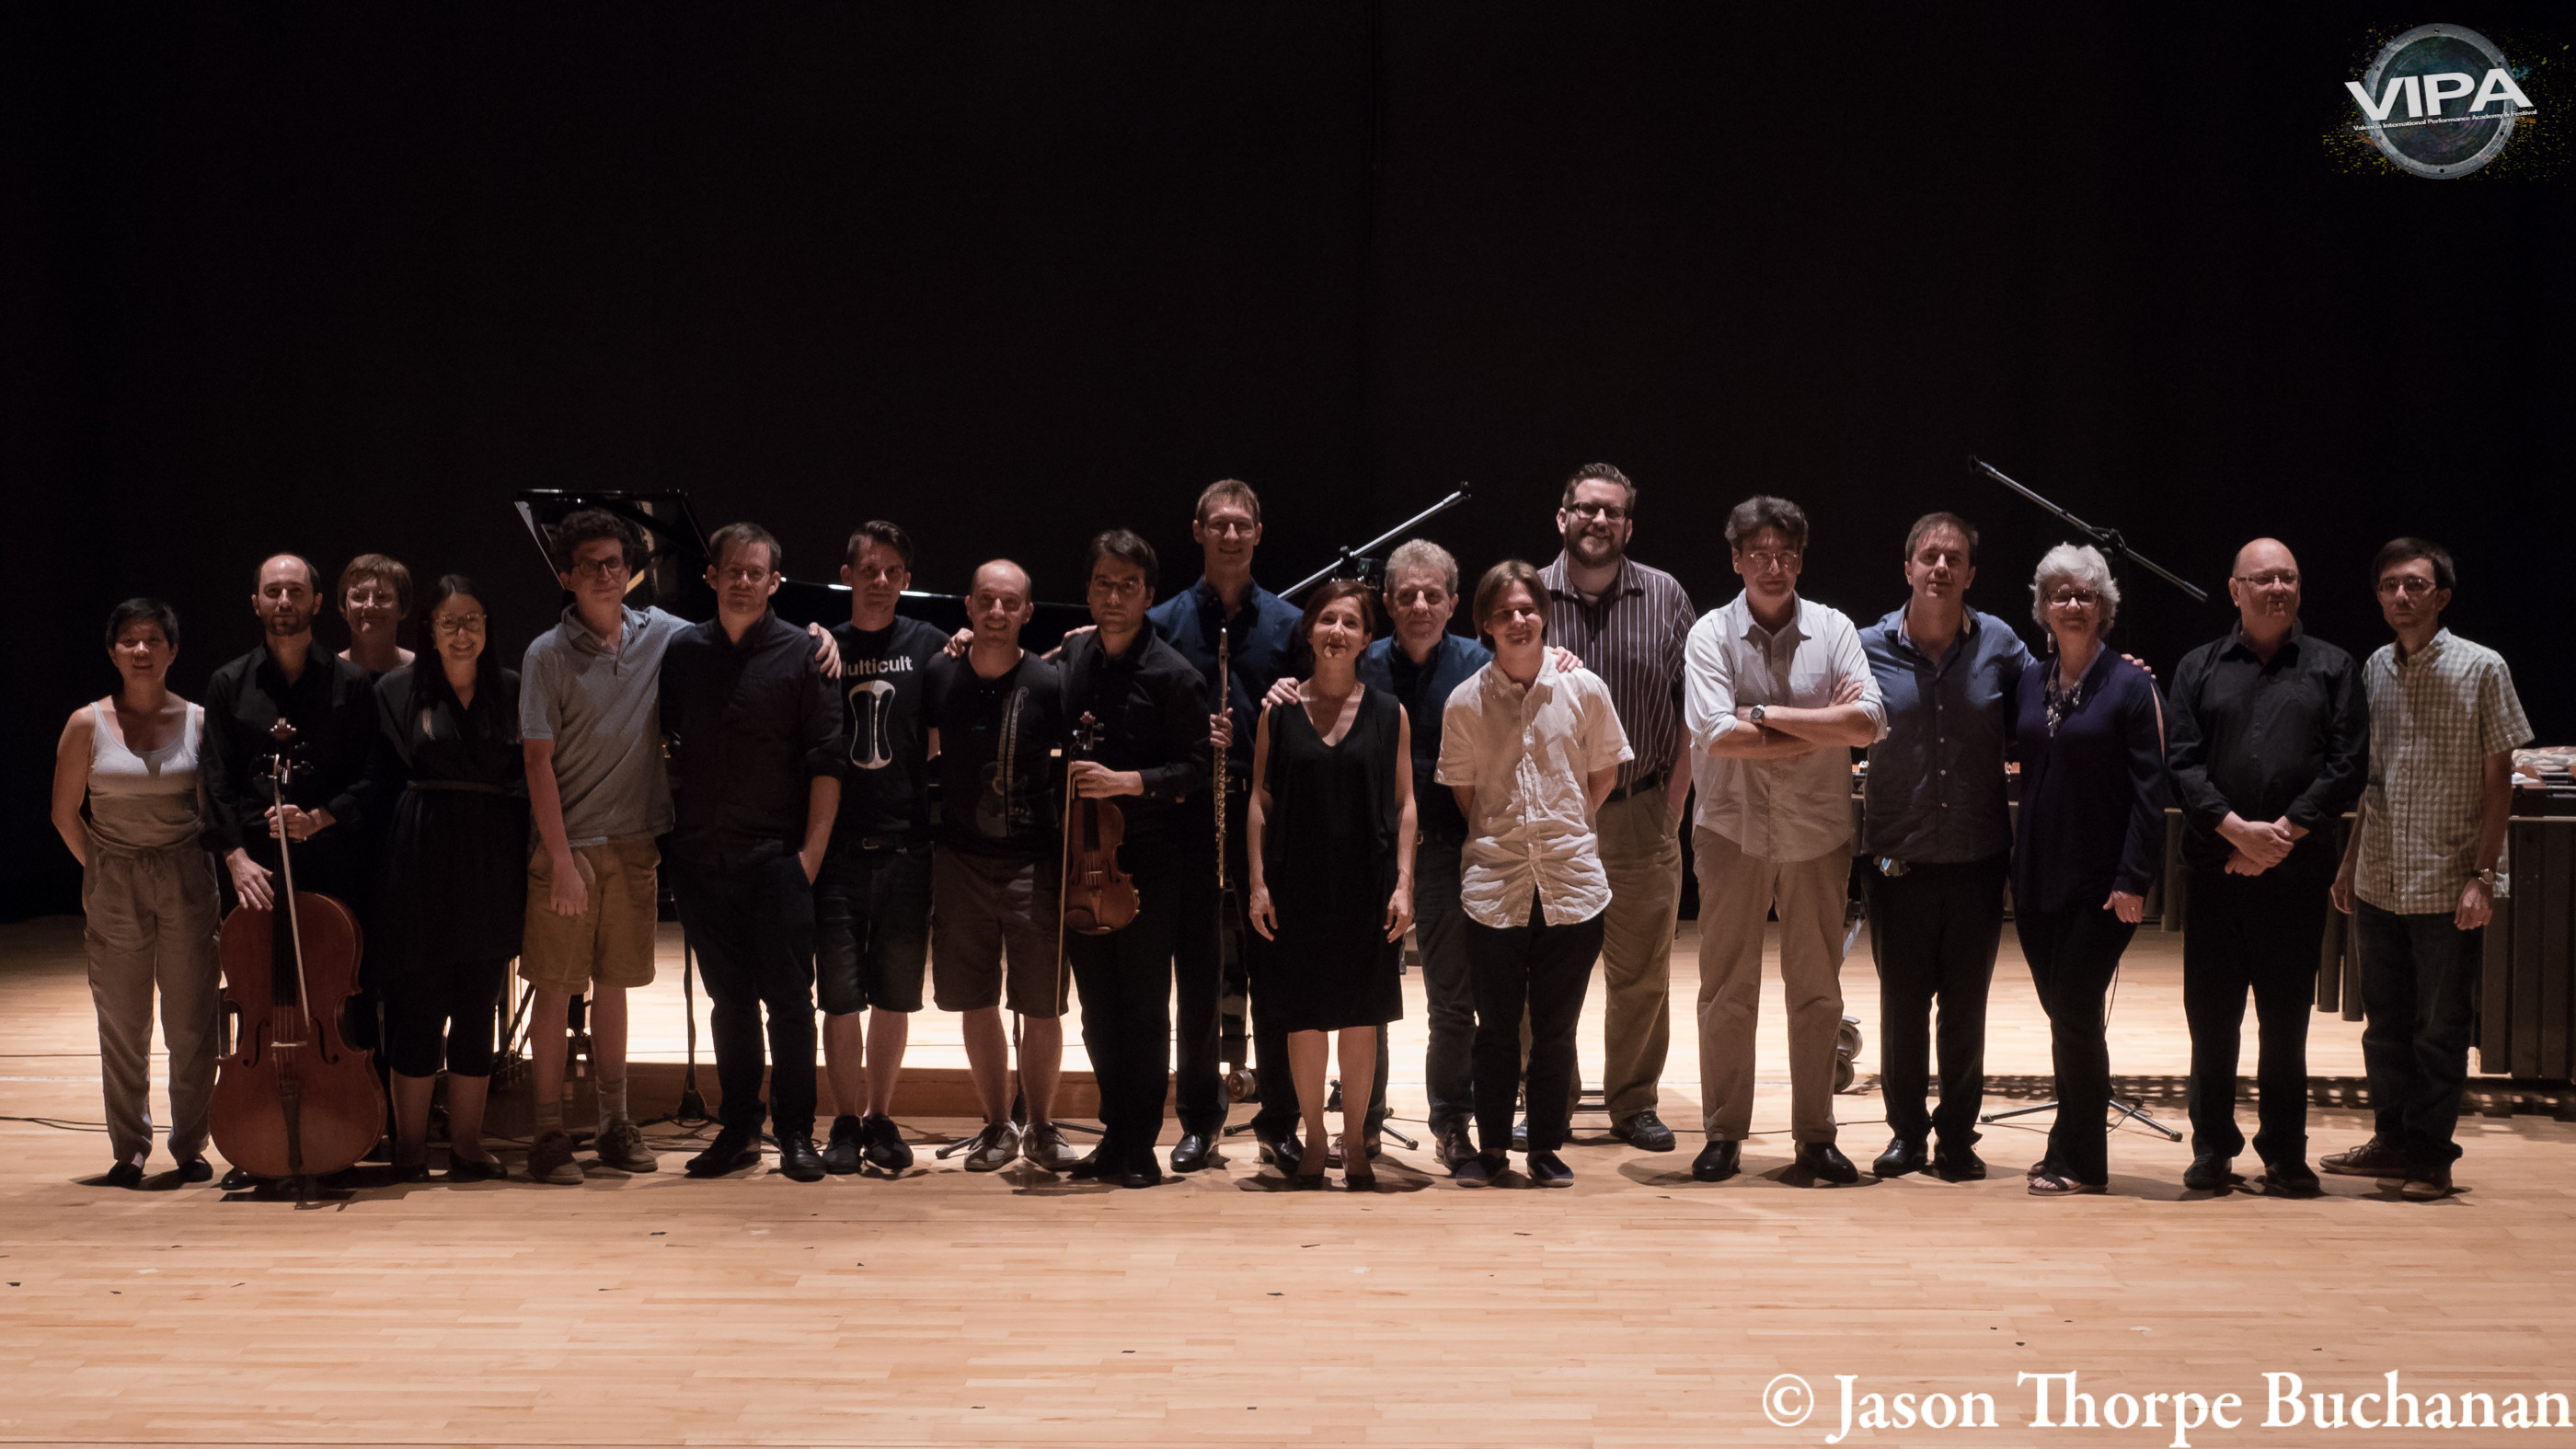 VIPA-Jul-2-300dpi_2800px-interface-with-composers-1960028